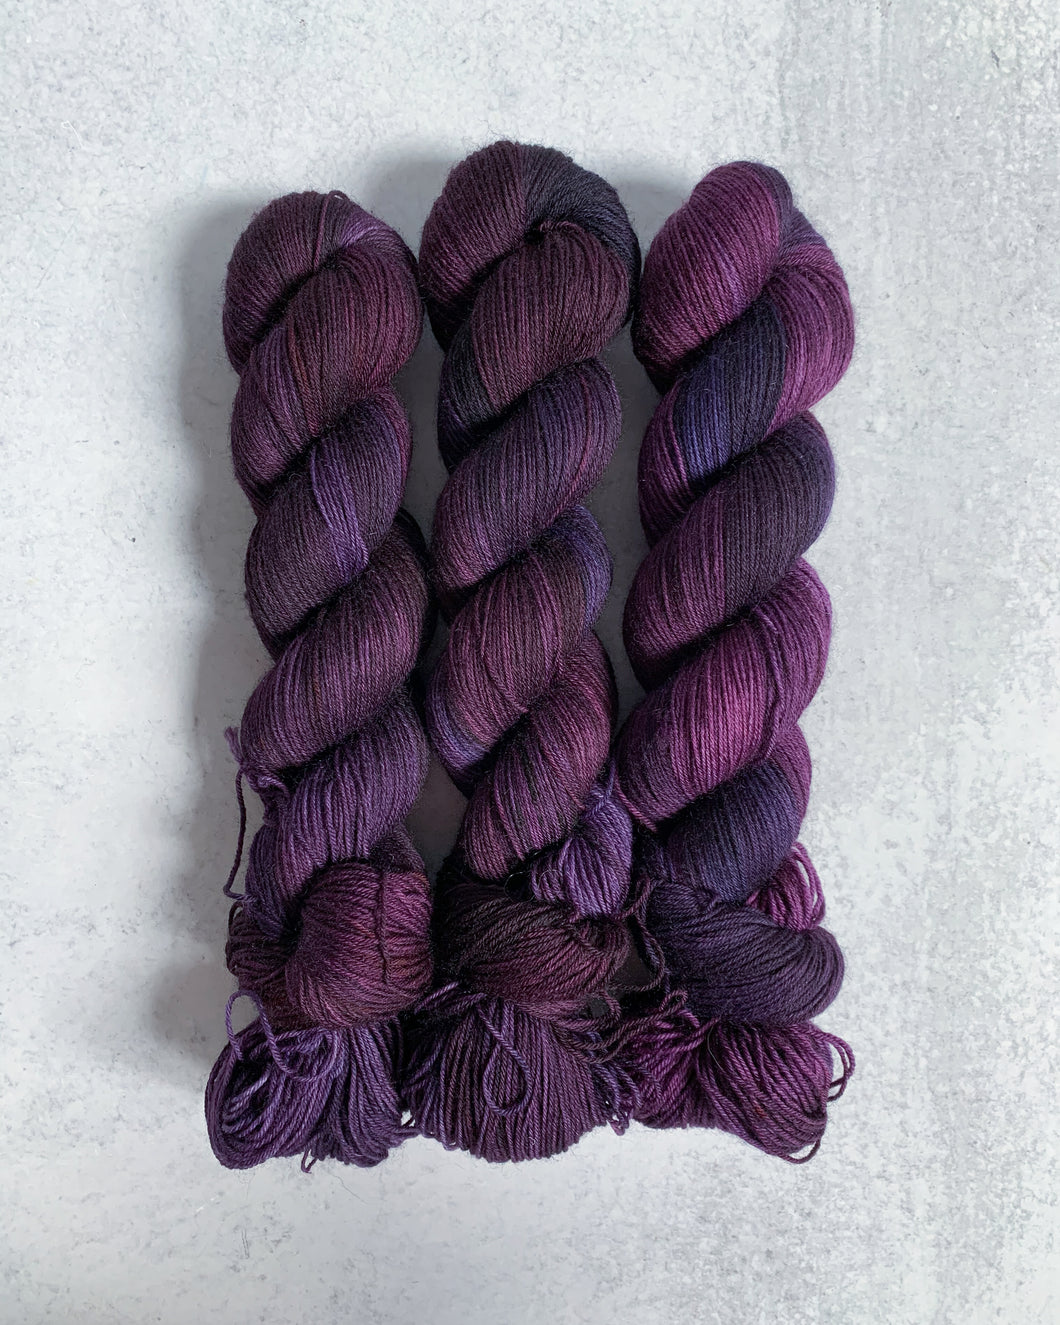 The Sounds of Silence Pure BFL Yarn